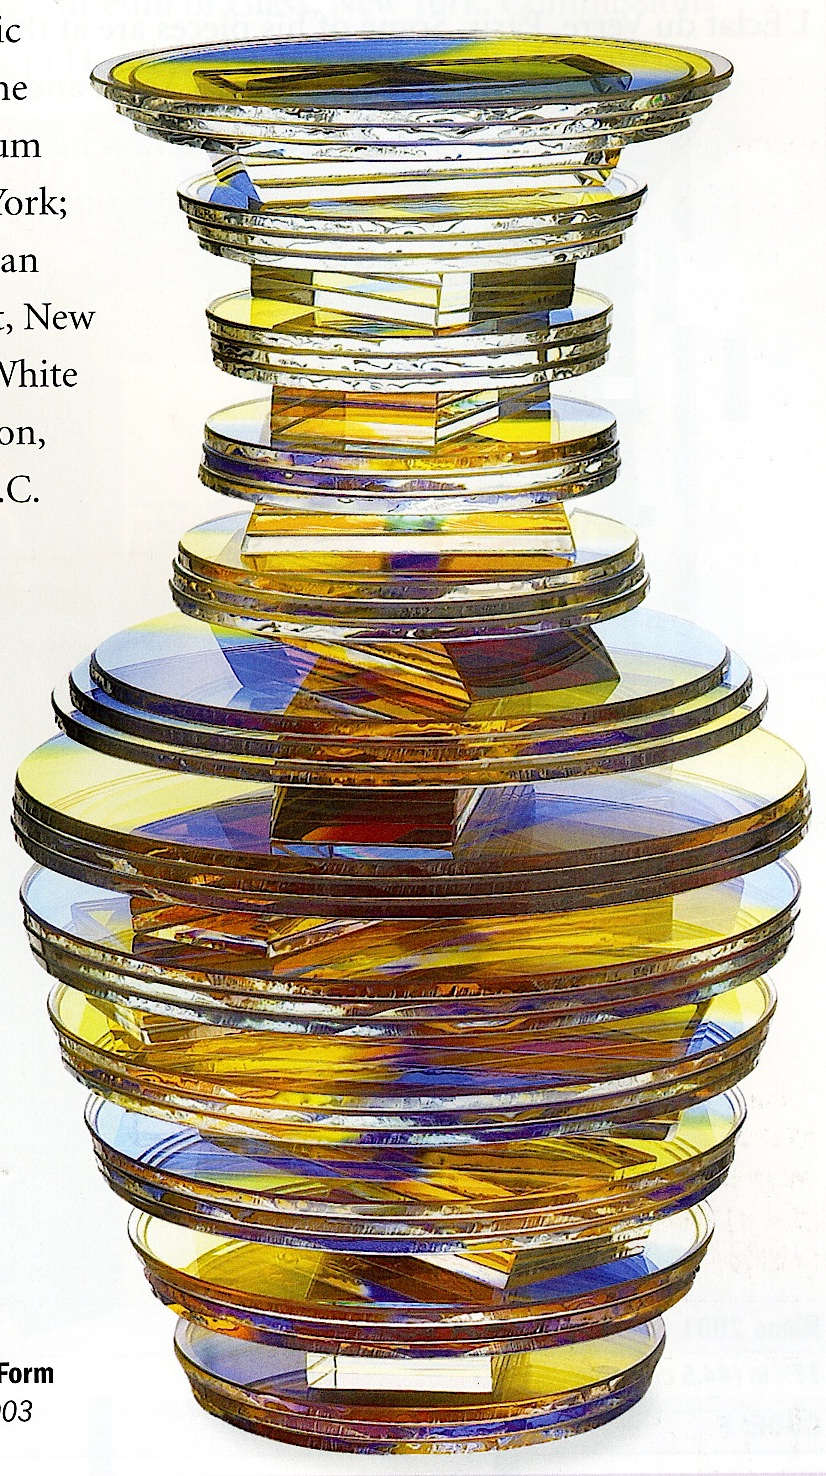 Sidney Hutter 2003 art glass in a color photograph